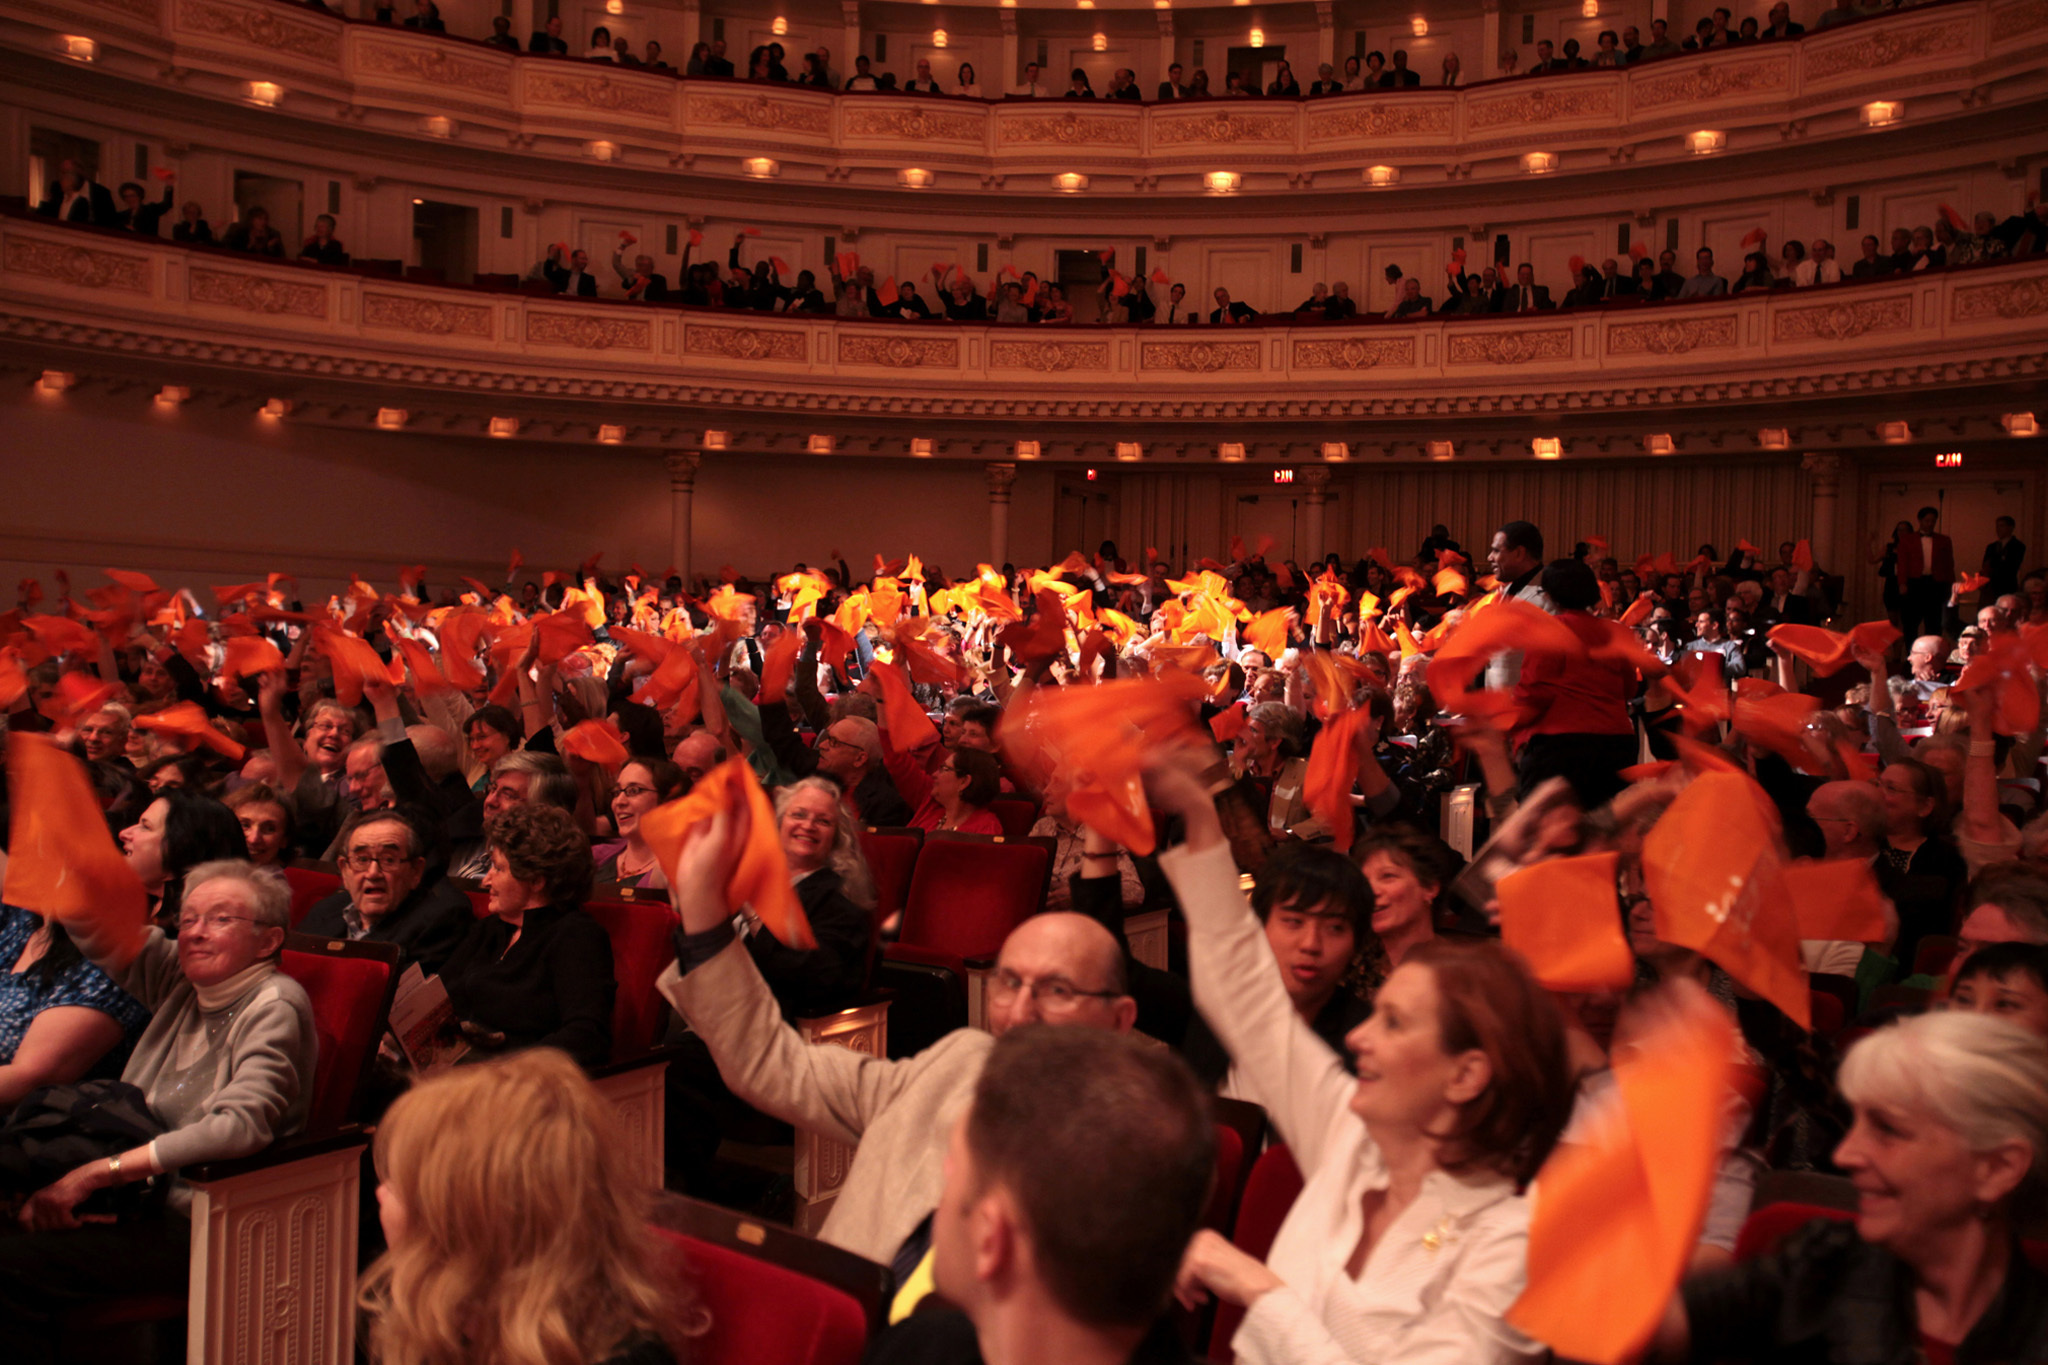 Give a warm New York welcome to visiting orchestras